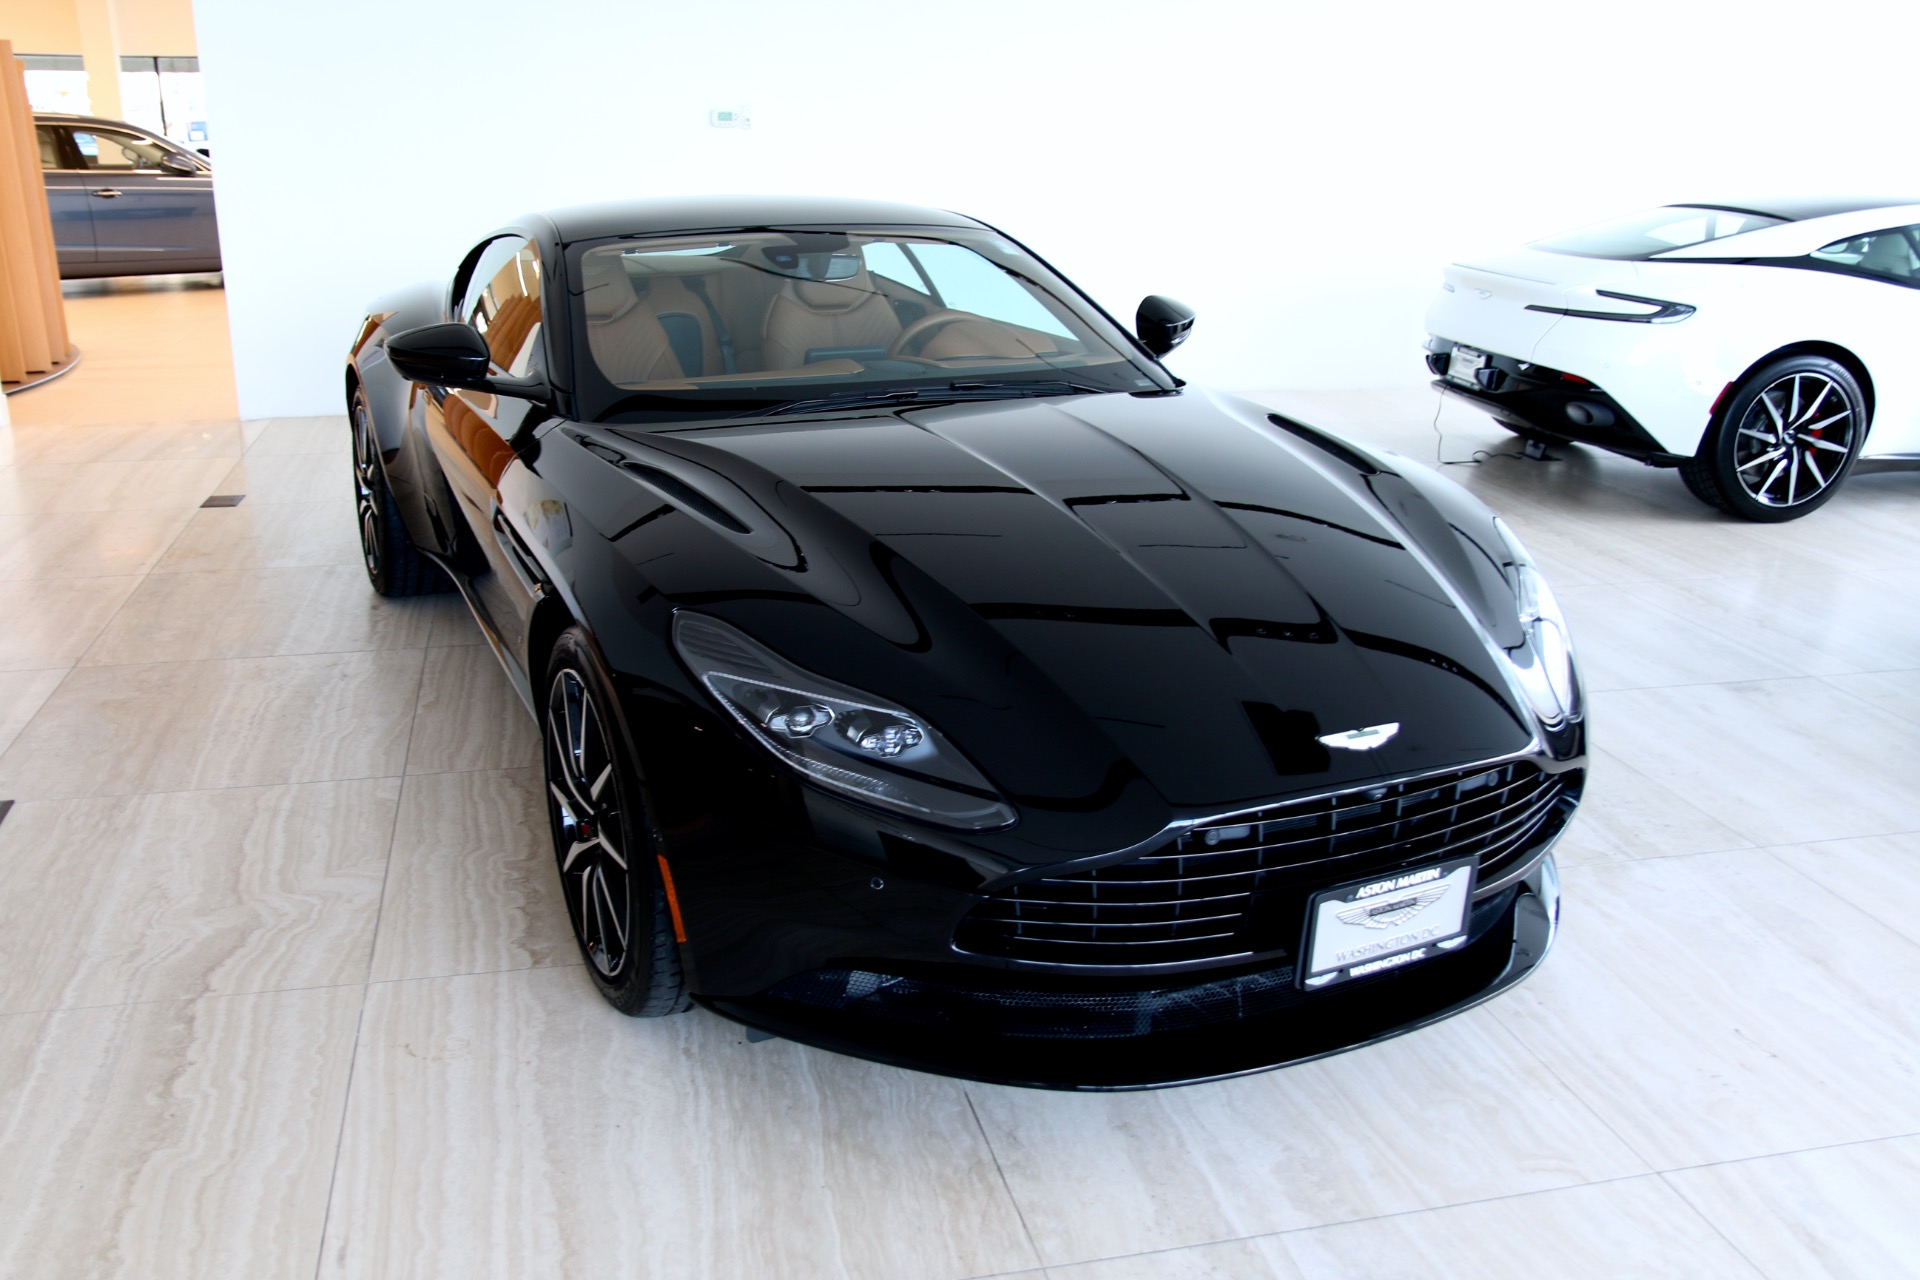 2018 aston martin db11 v8 stock # 8l04040 for sale near vienna, va